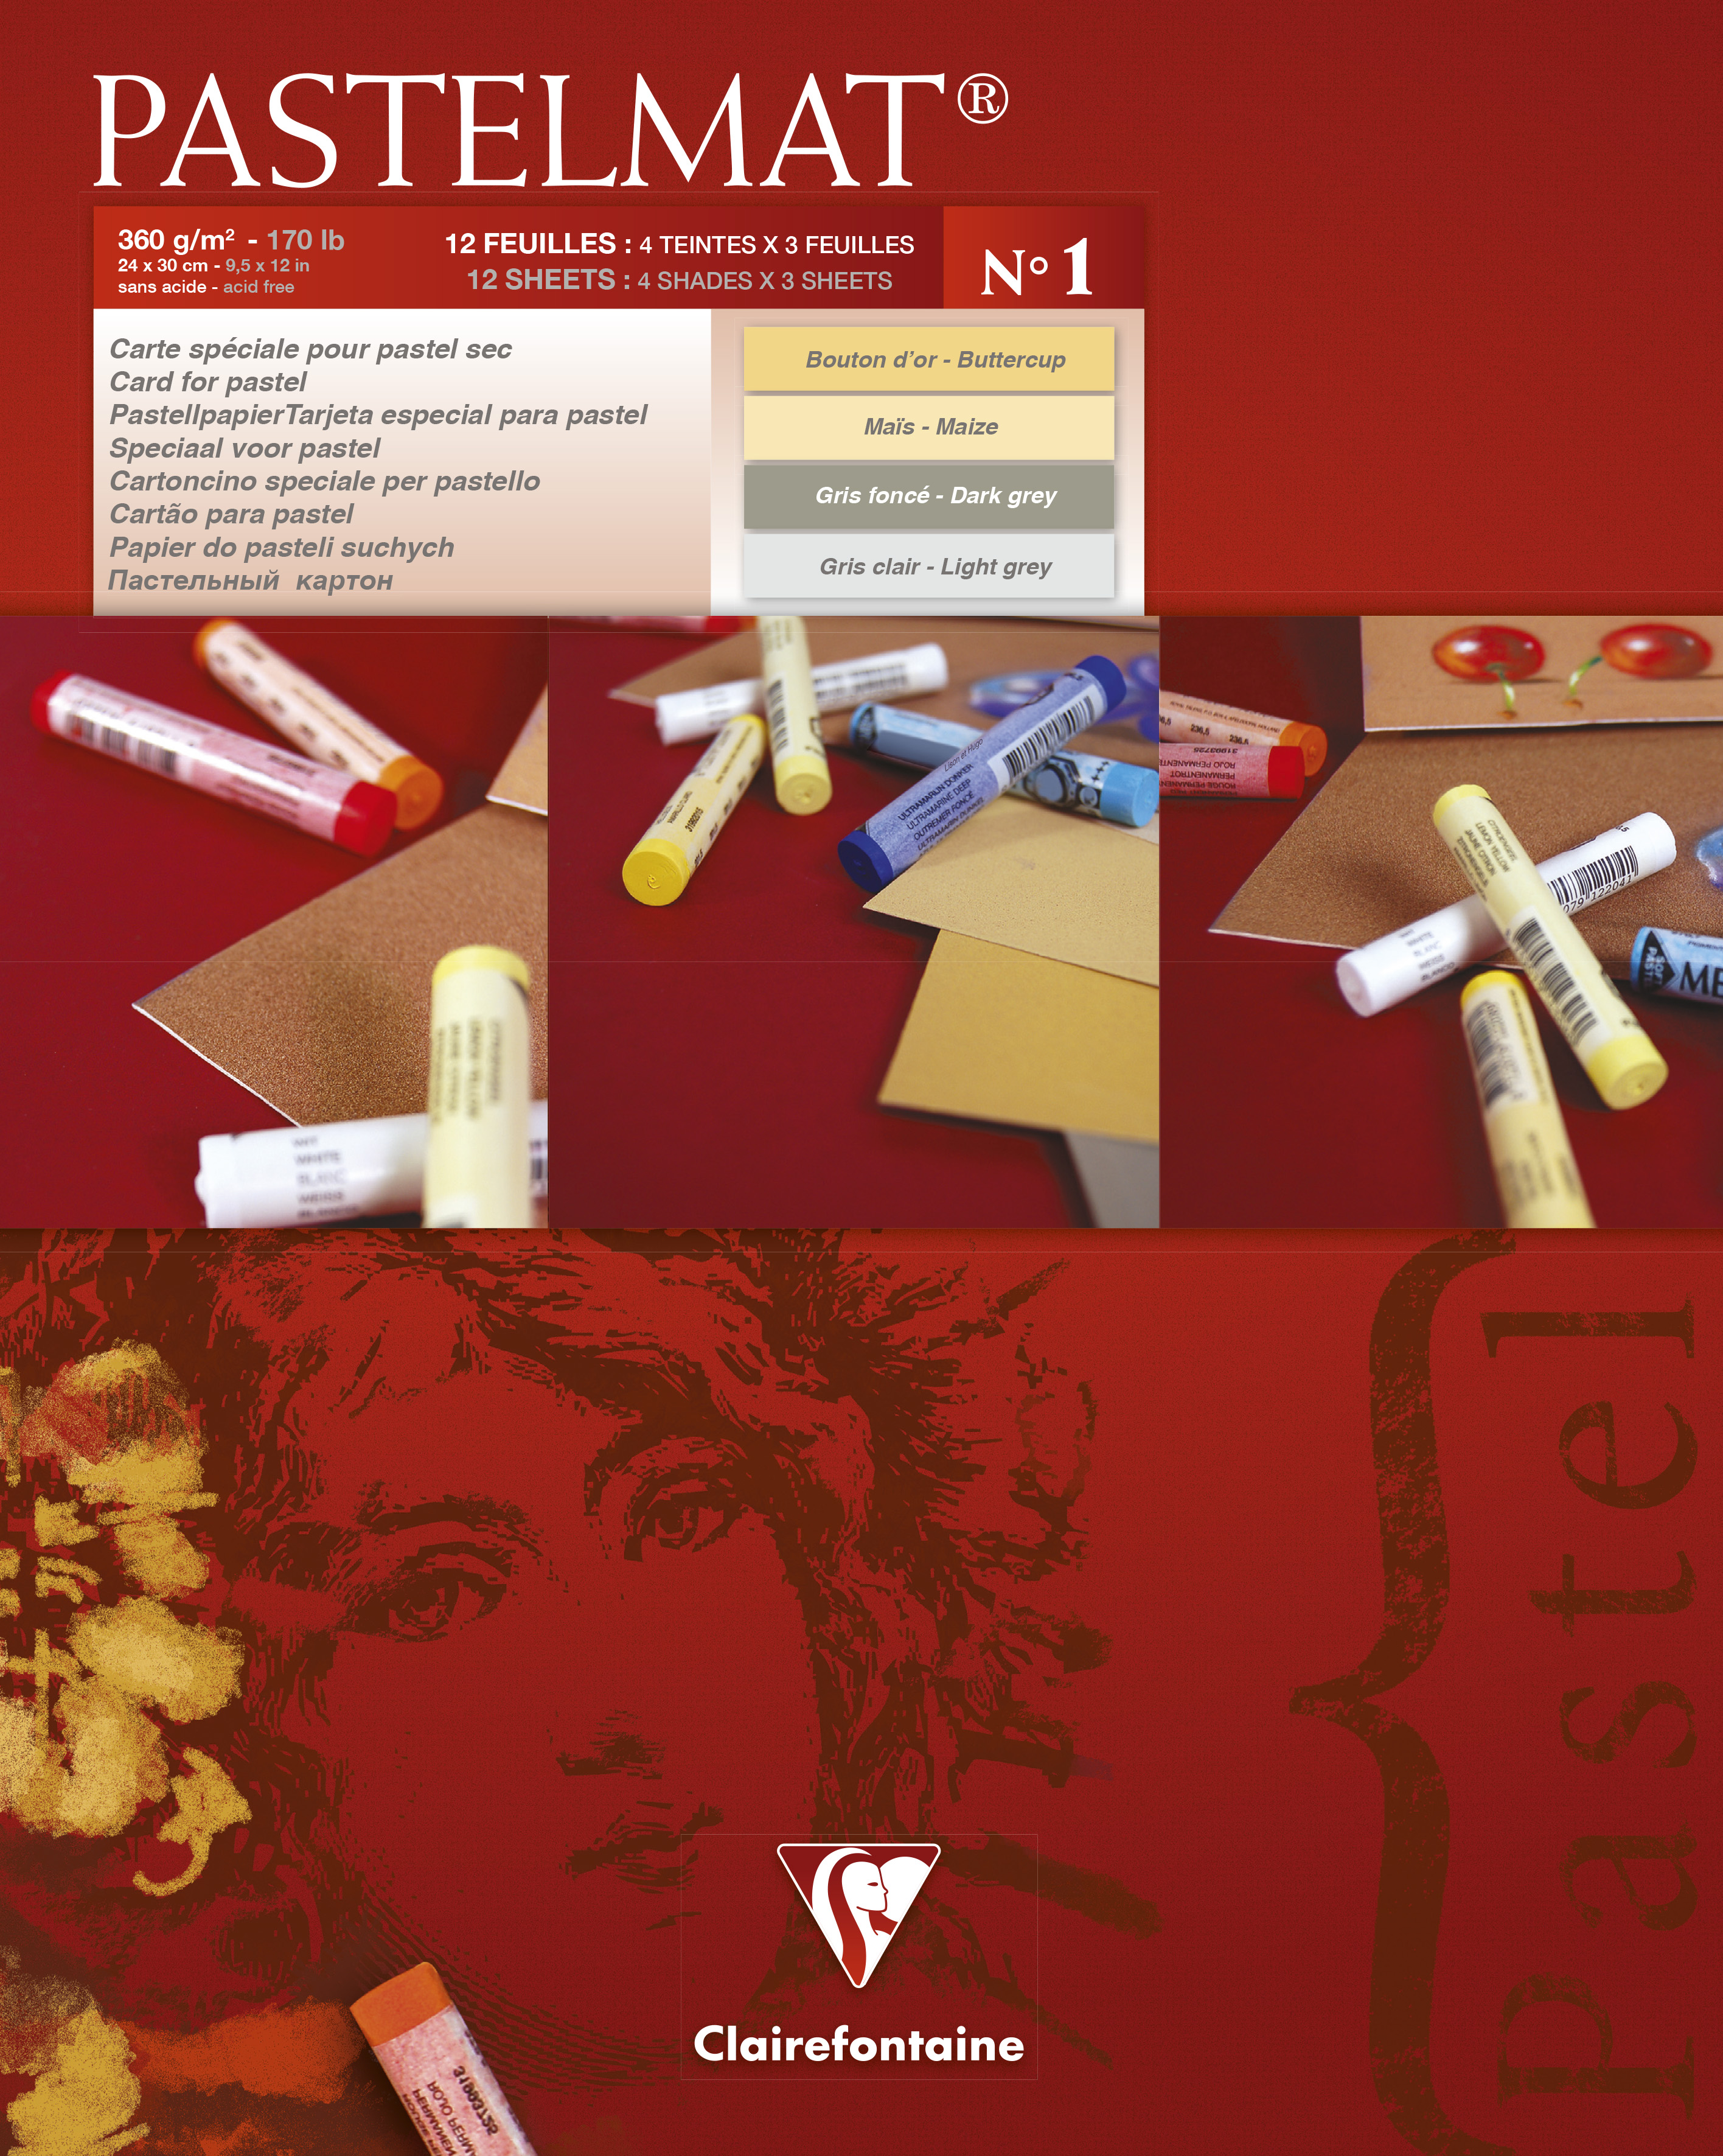 Clairefontaine Pastelmat Pad No.1 240x300mm 360gsm 12 Sheets 4 Colour Shades of Paper 96017C